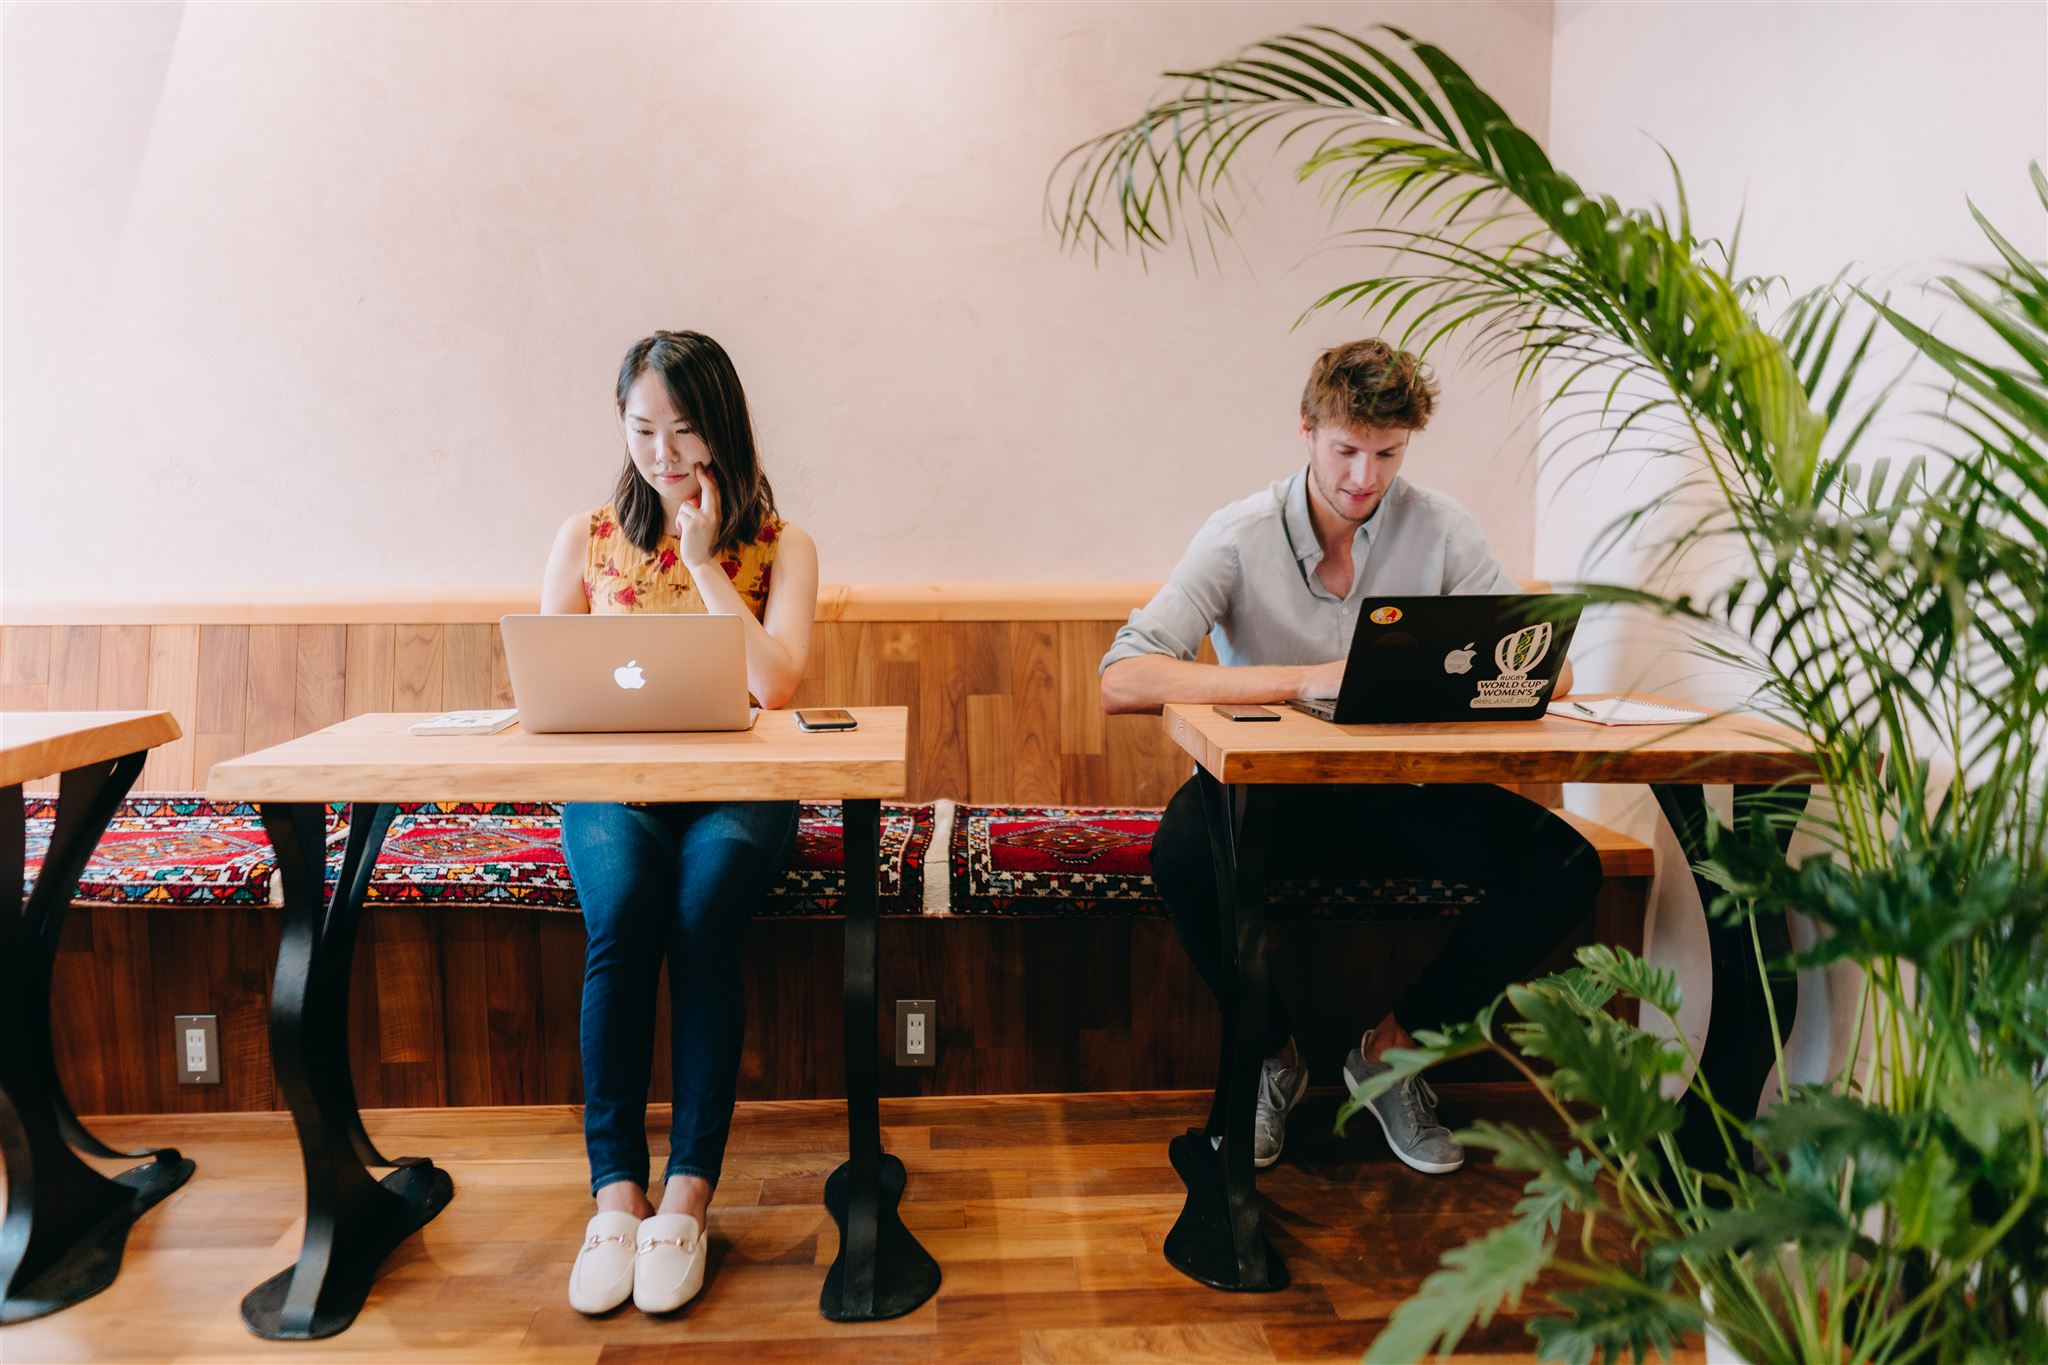 Co-working Space in Sugamo Tokyo